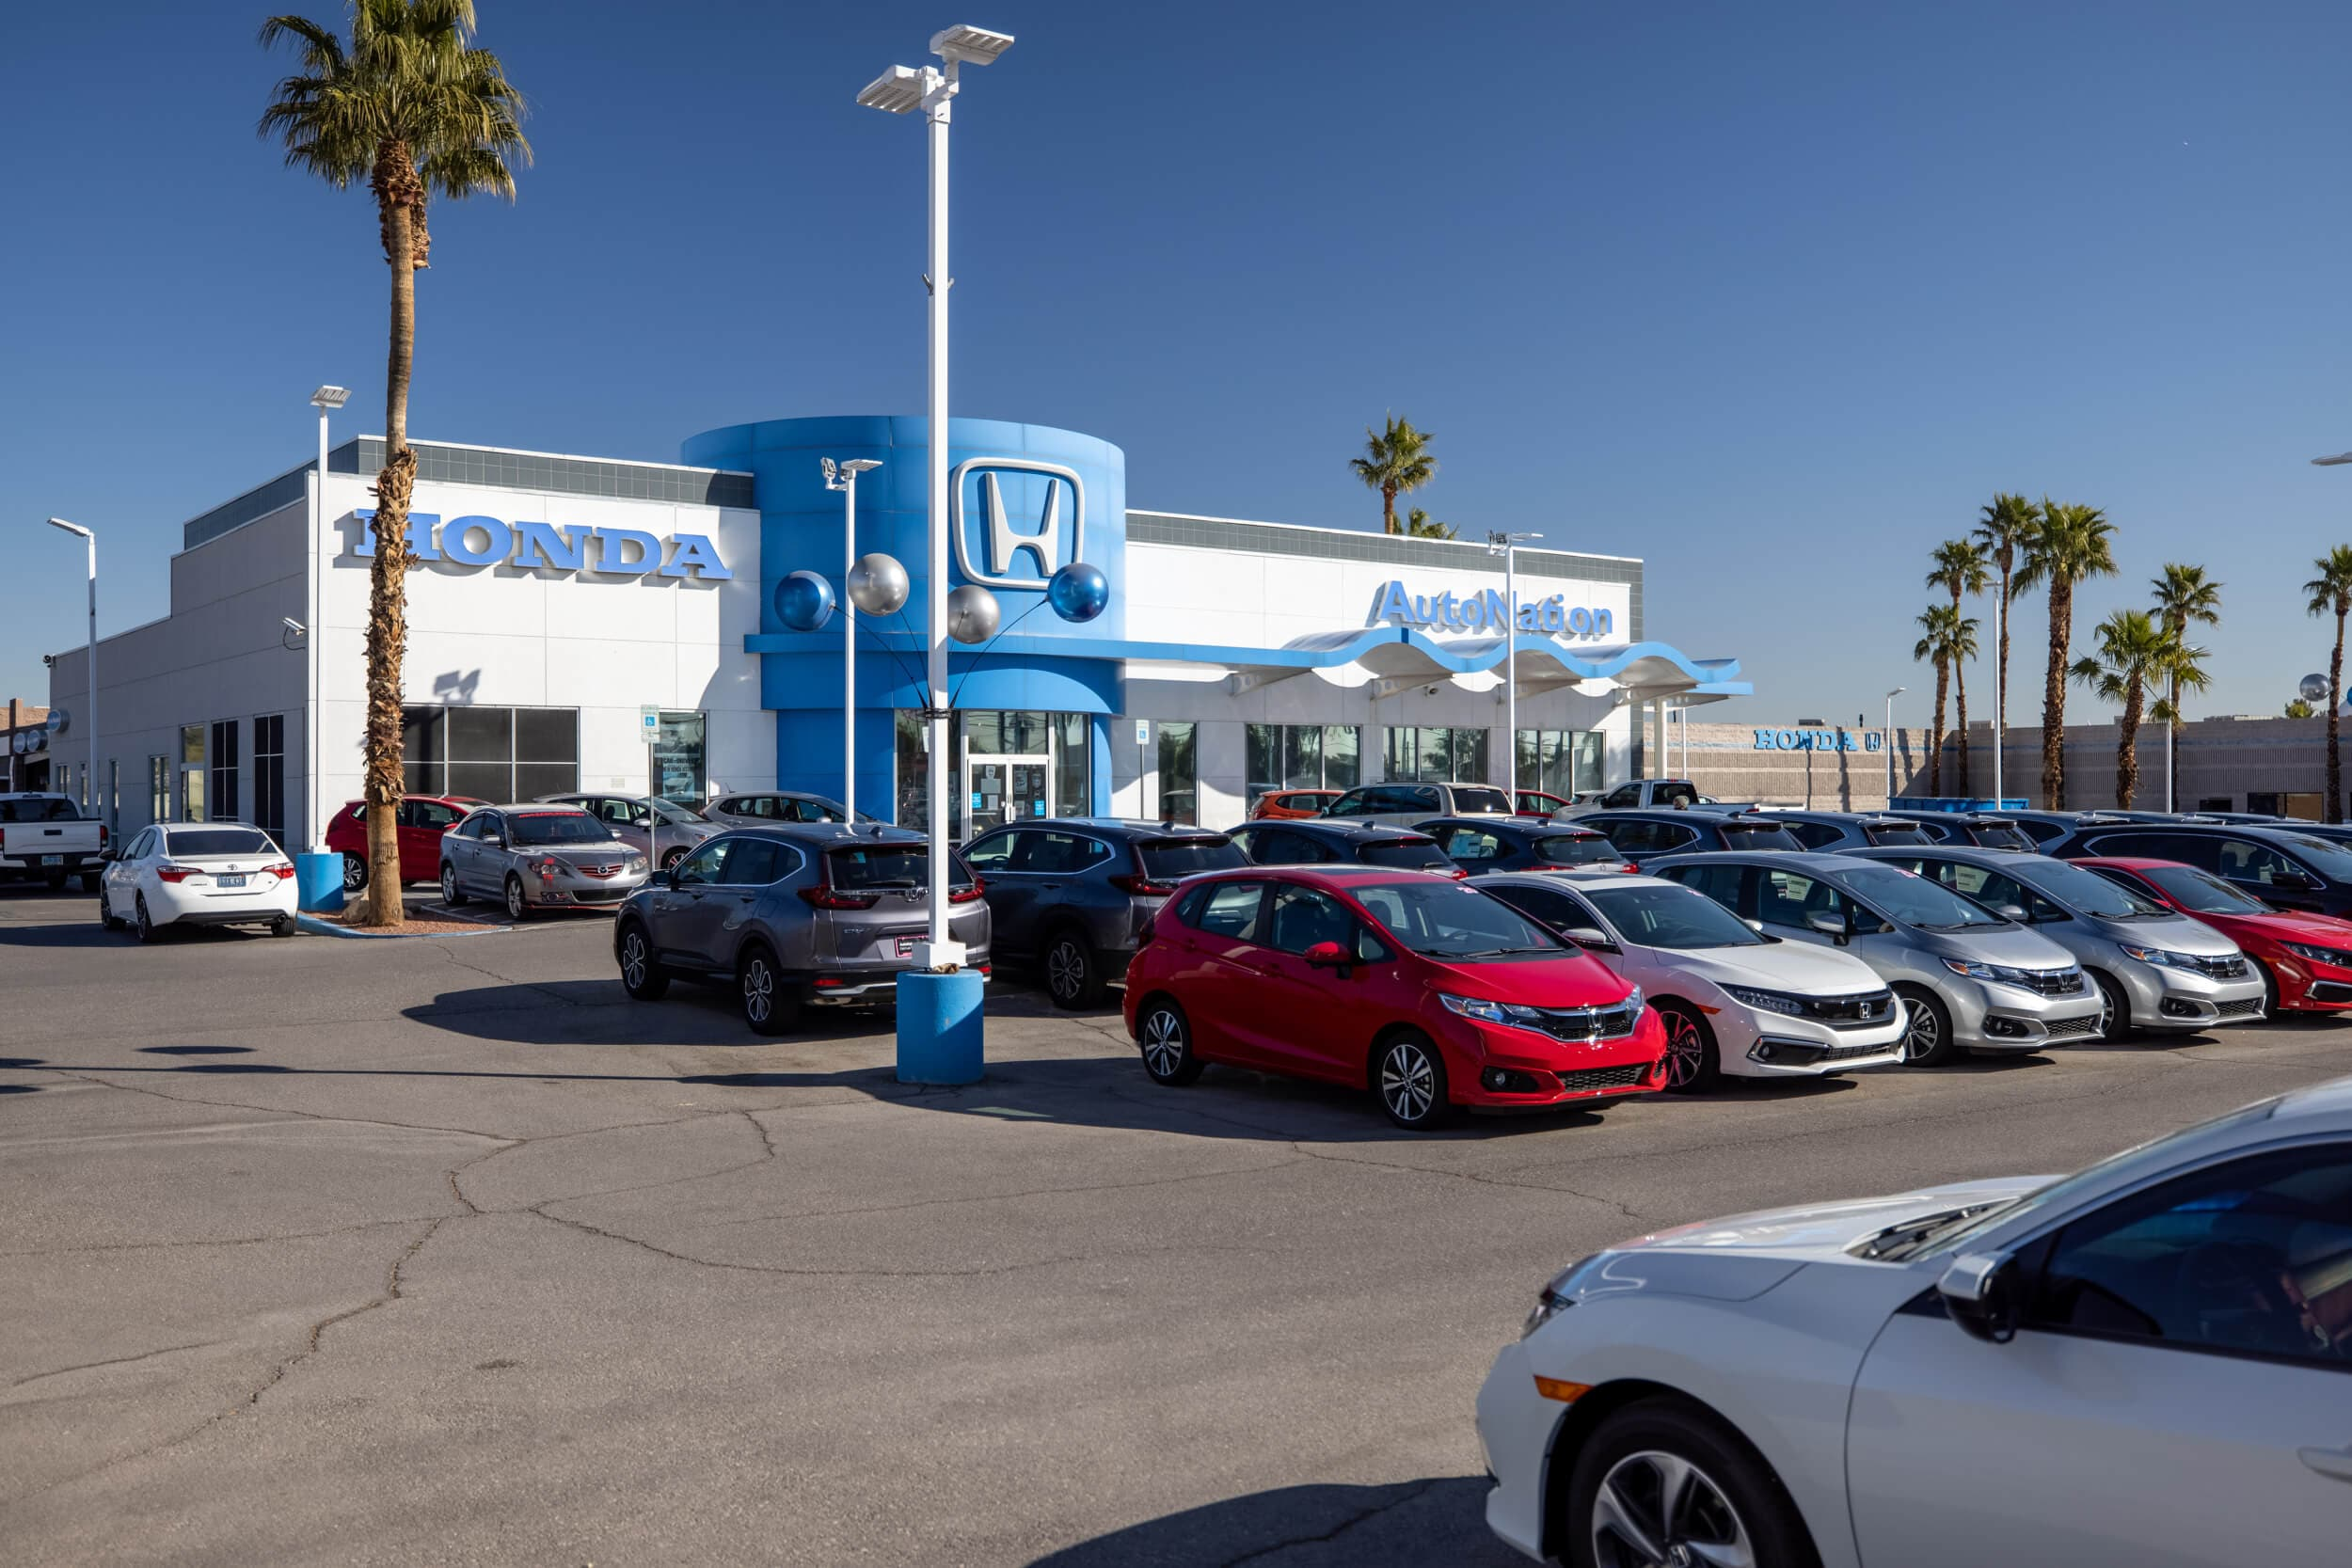 Exterior view of AutoNation Honda East Las Vegas